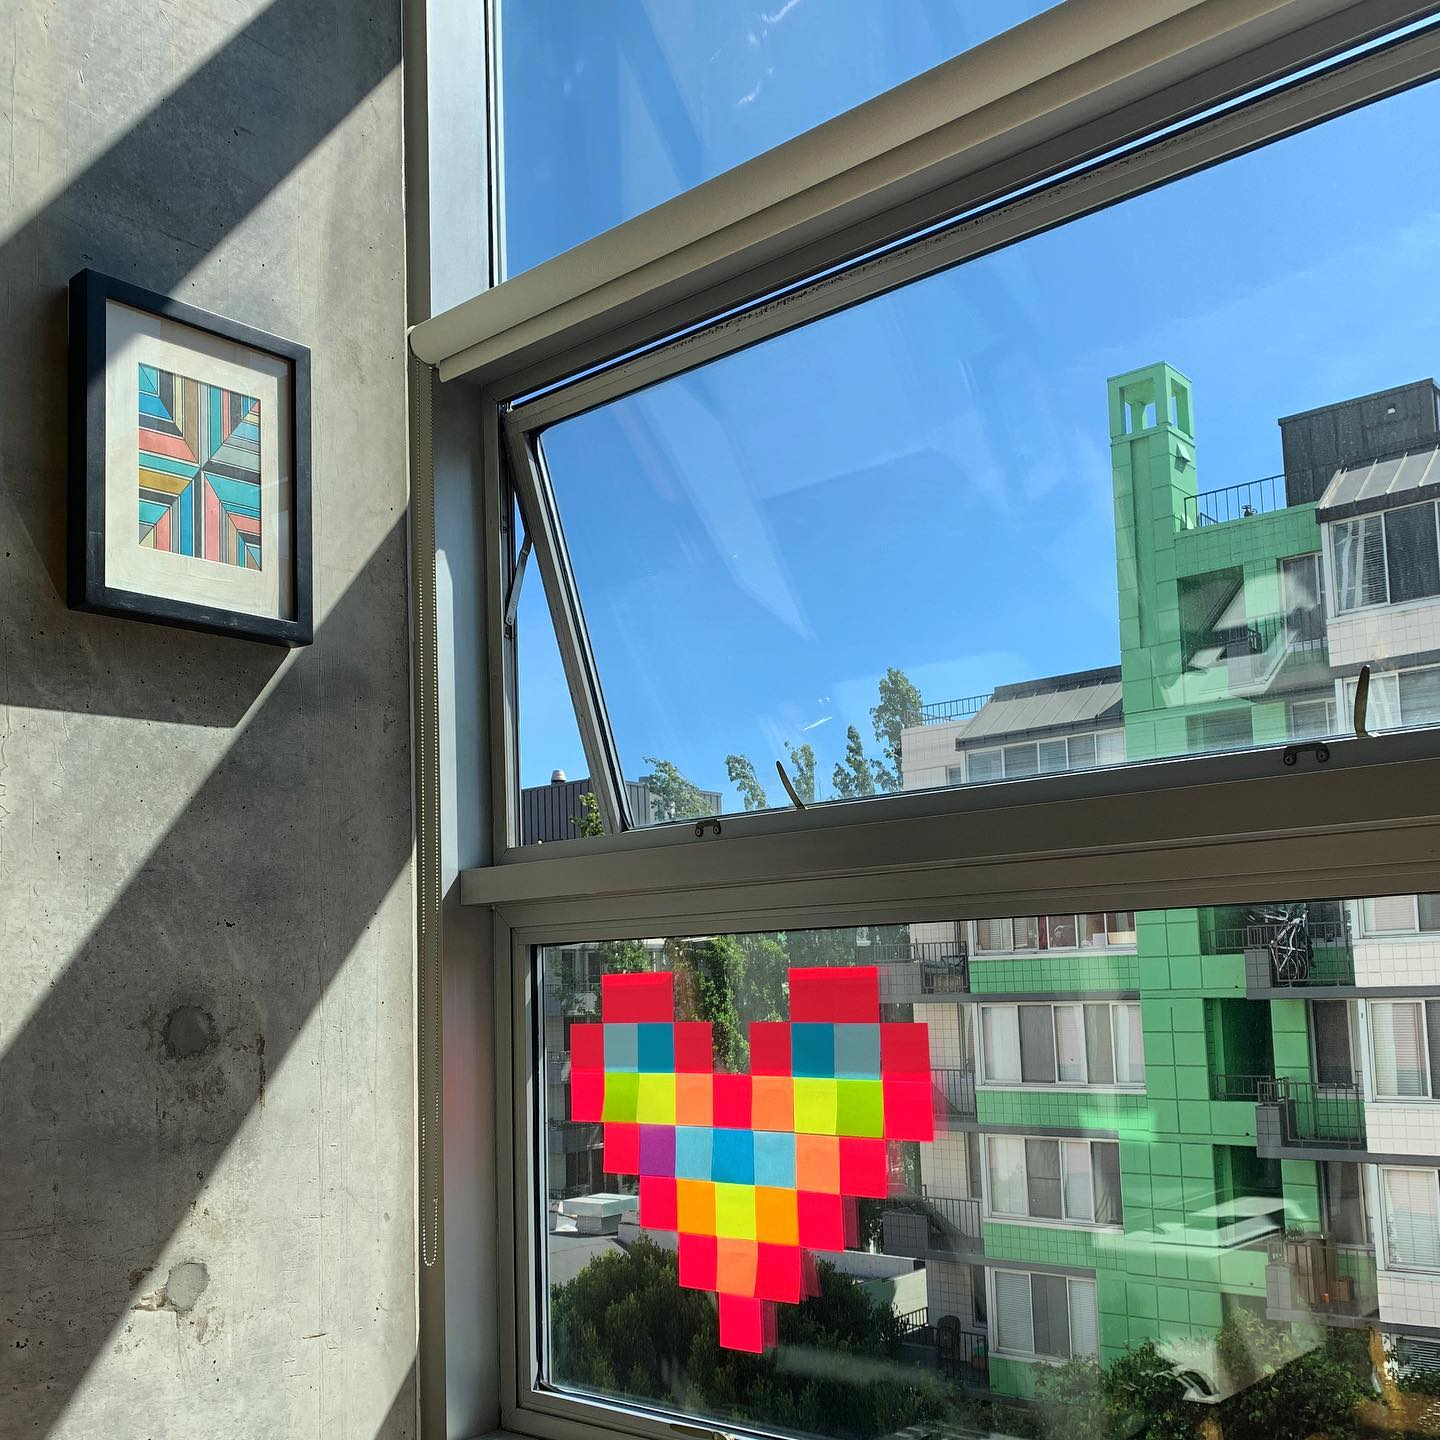 Love will set you free. Post-it note art for the neighbors across the street.